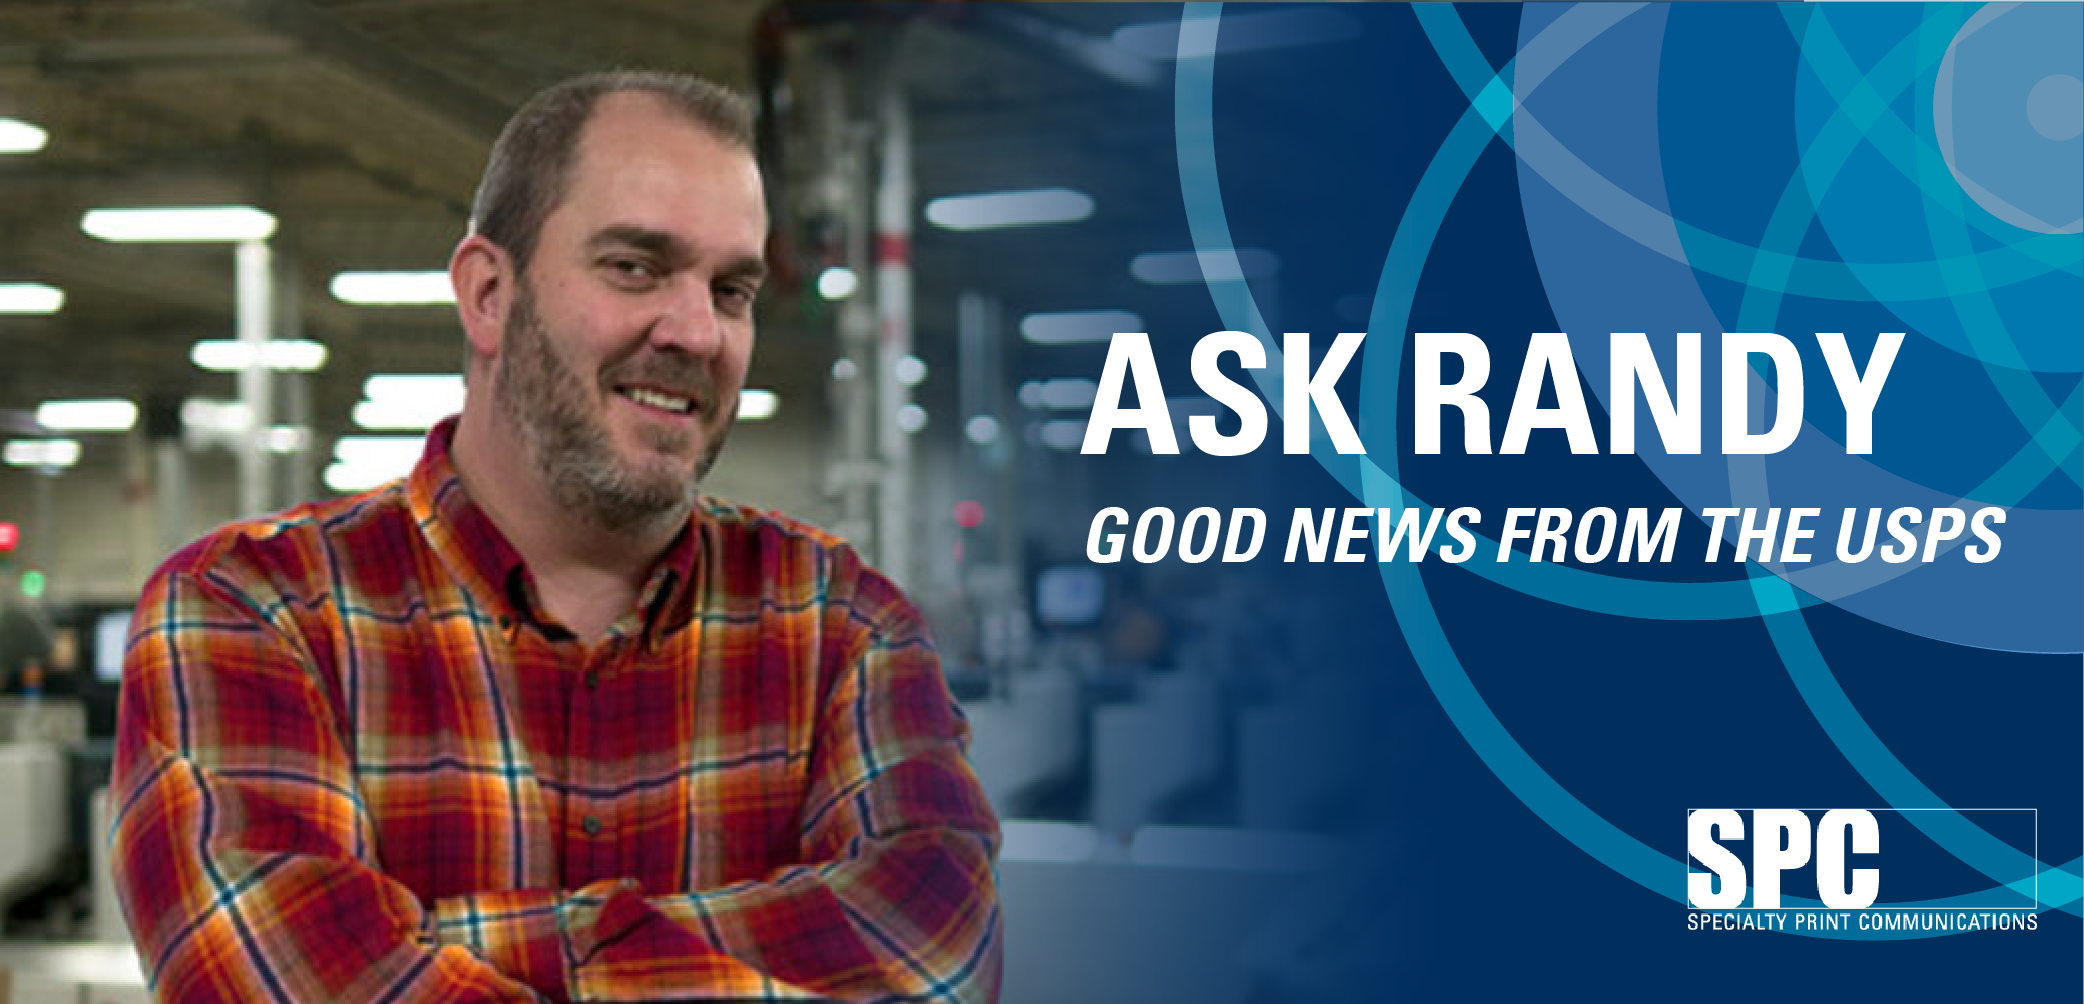 Ask Randy: Good News from the USPS